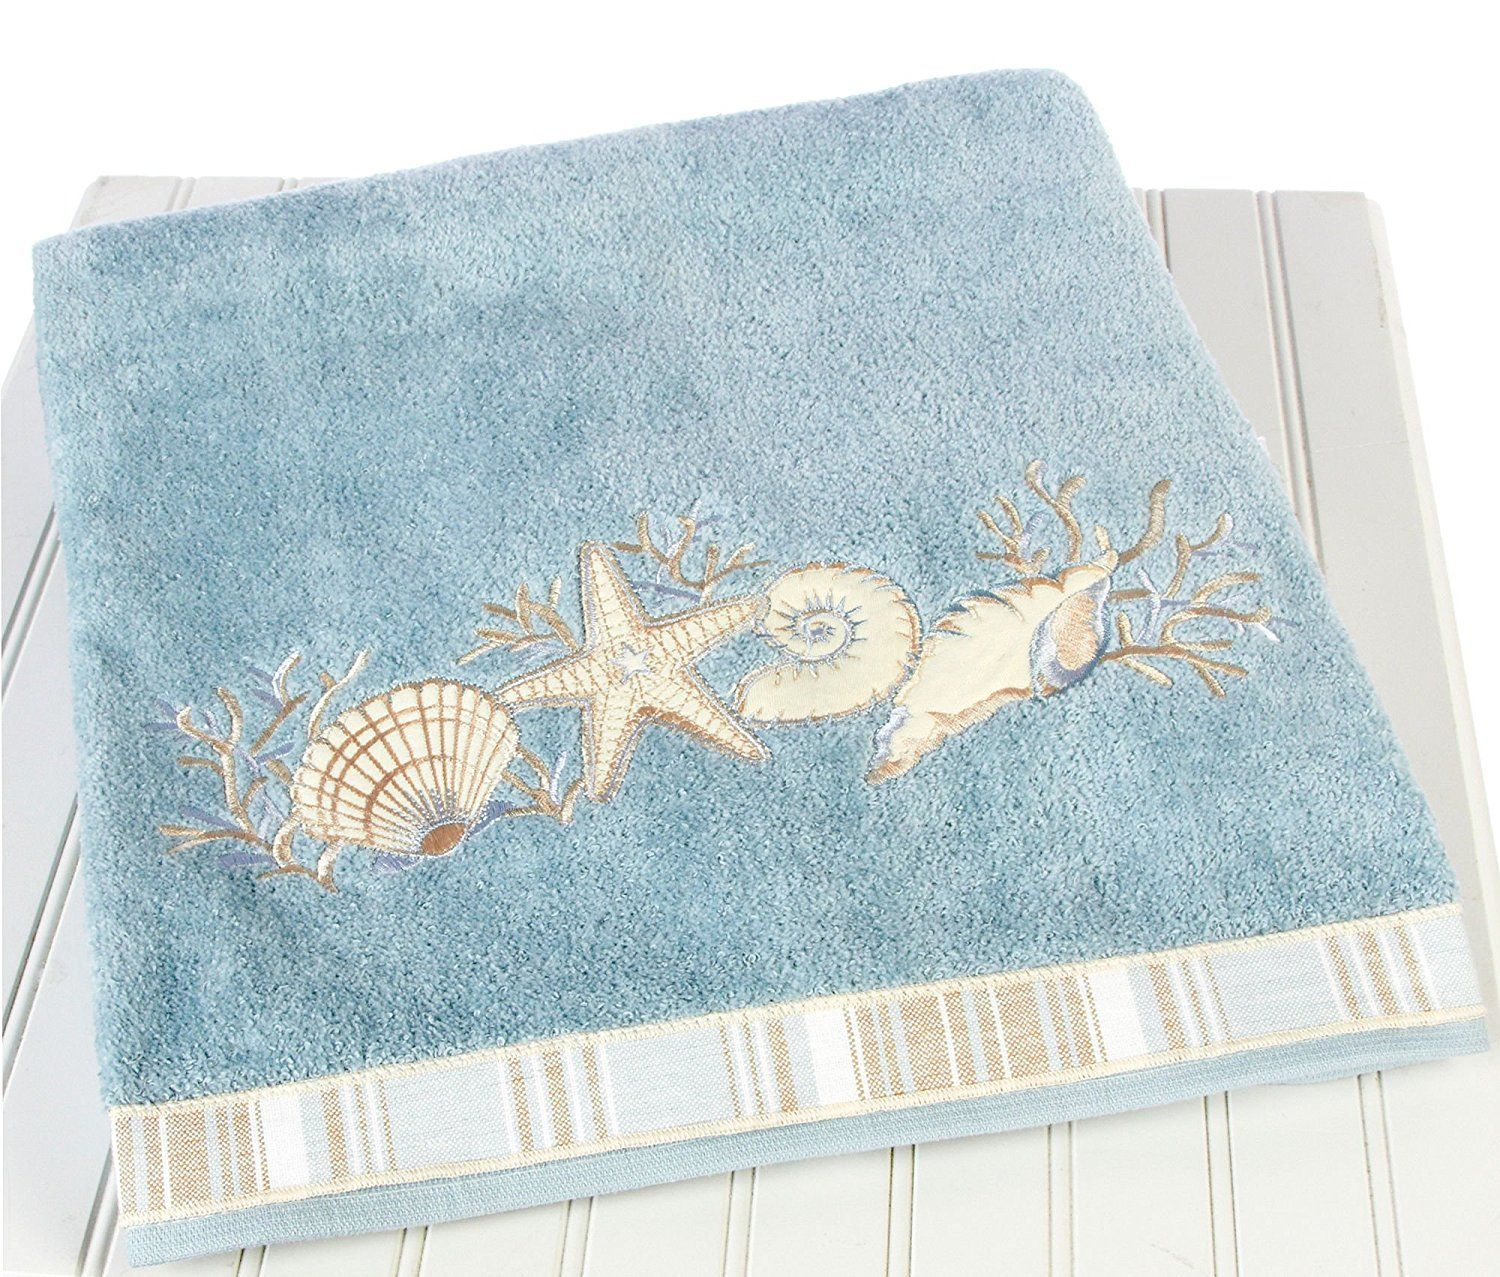 Image Result For Beach Themed Bathroom Towel Sets